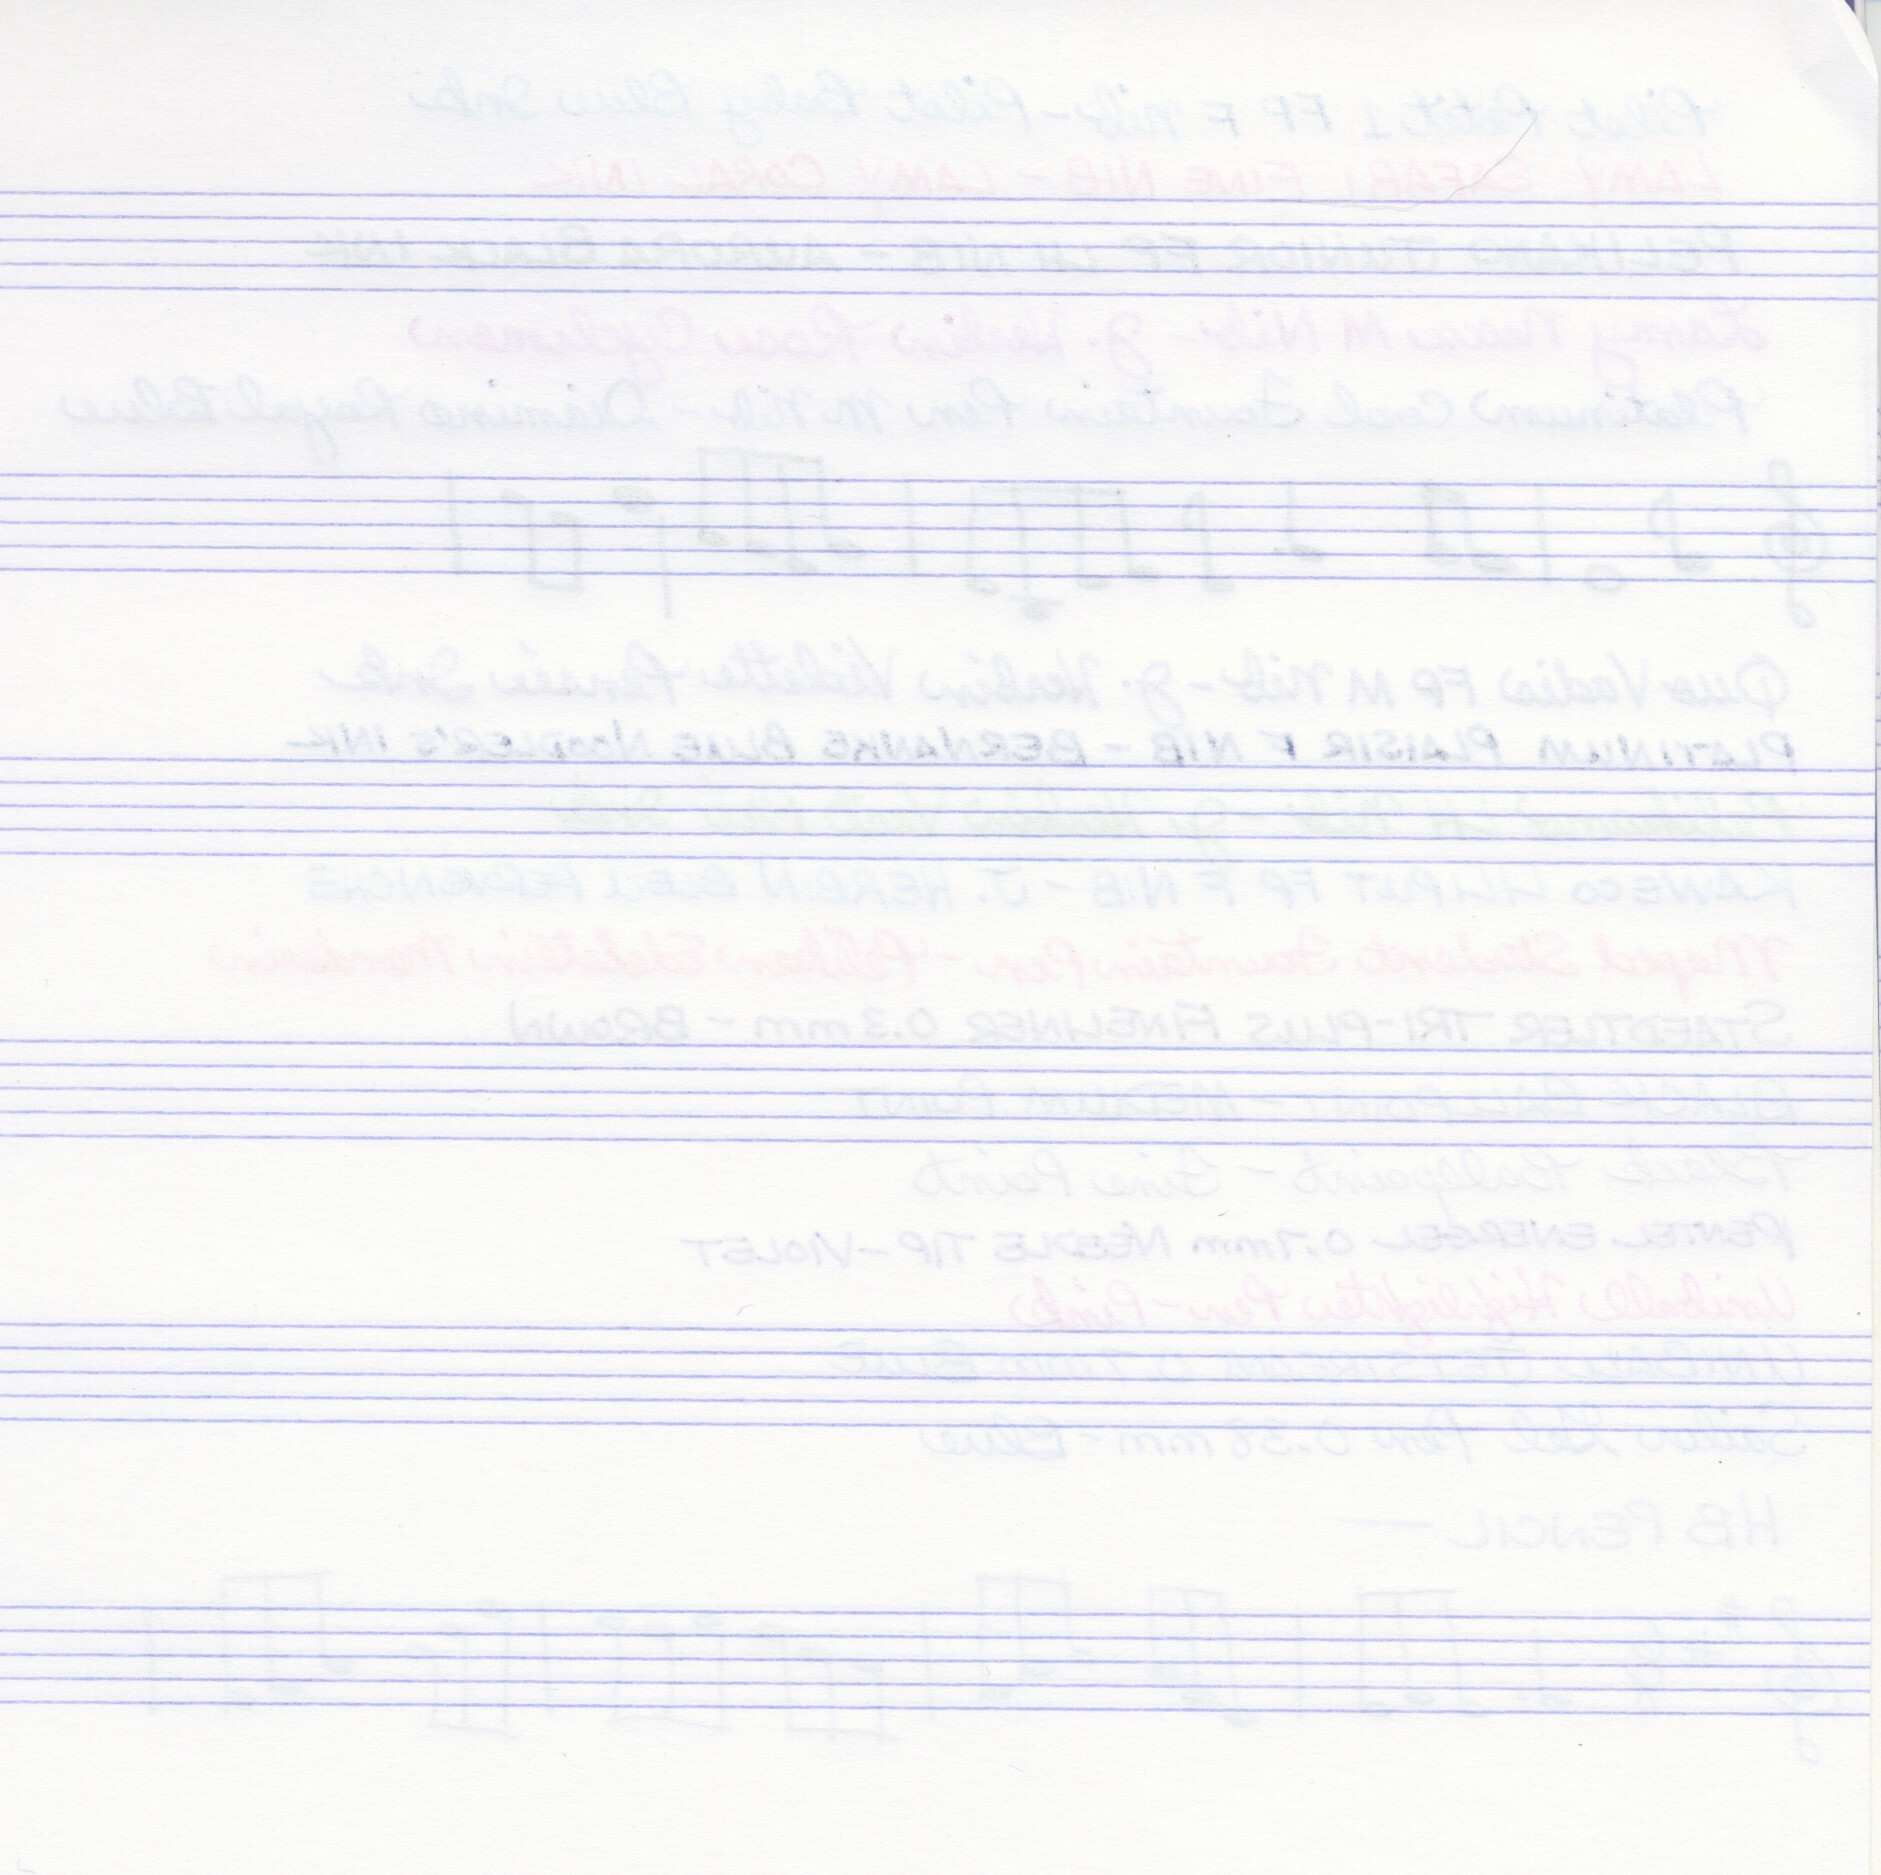 Clairefontaine Music Notebook - Writing Test (Back)